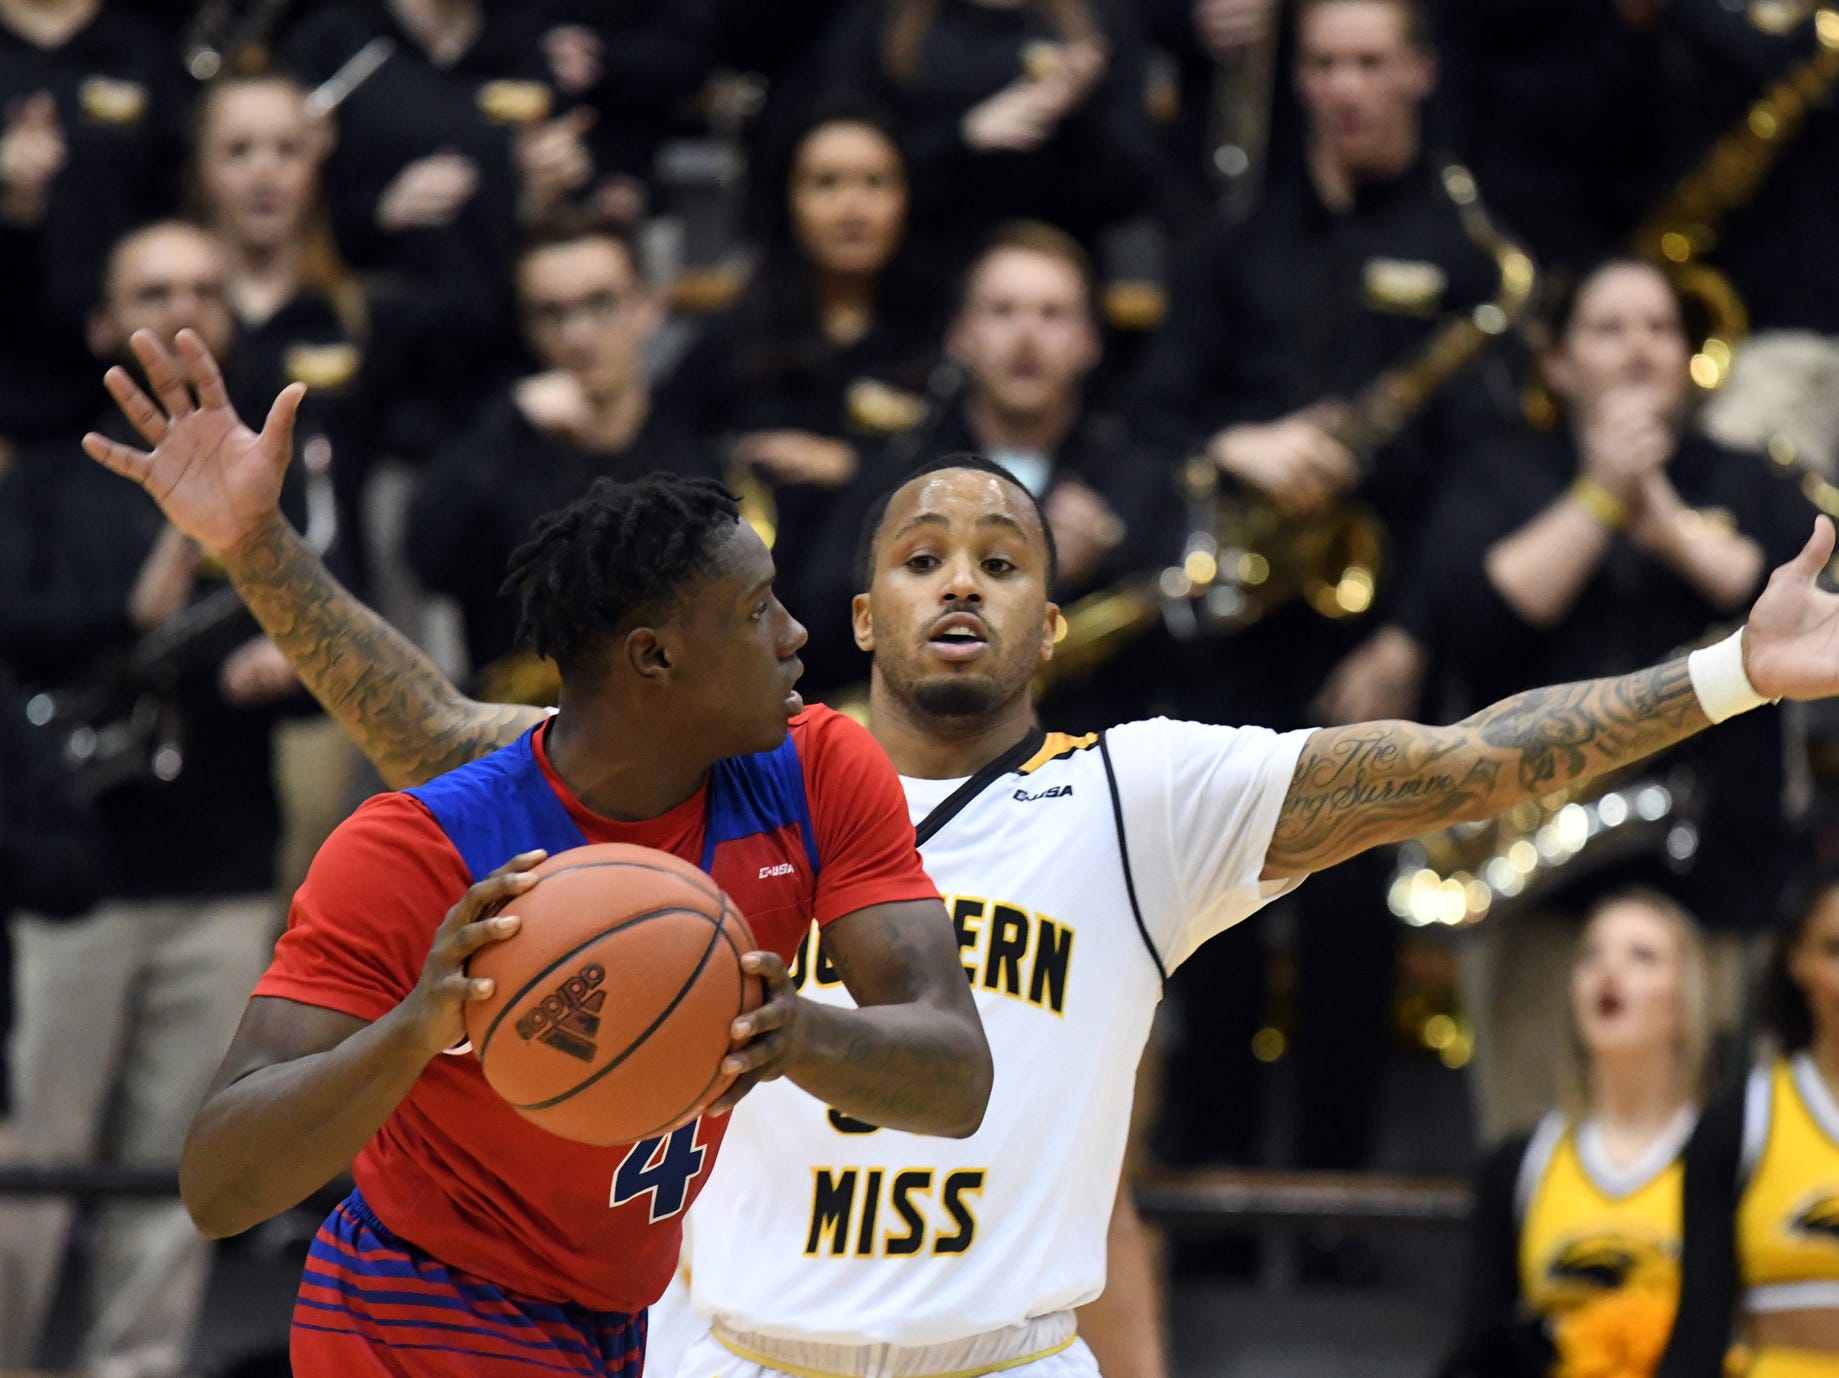 Southern Miss guard Tyree Griffin defends a player in a game against Louisiana Tech in Reed Green Coliseum on Saturday, February 9, 2019.